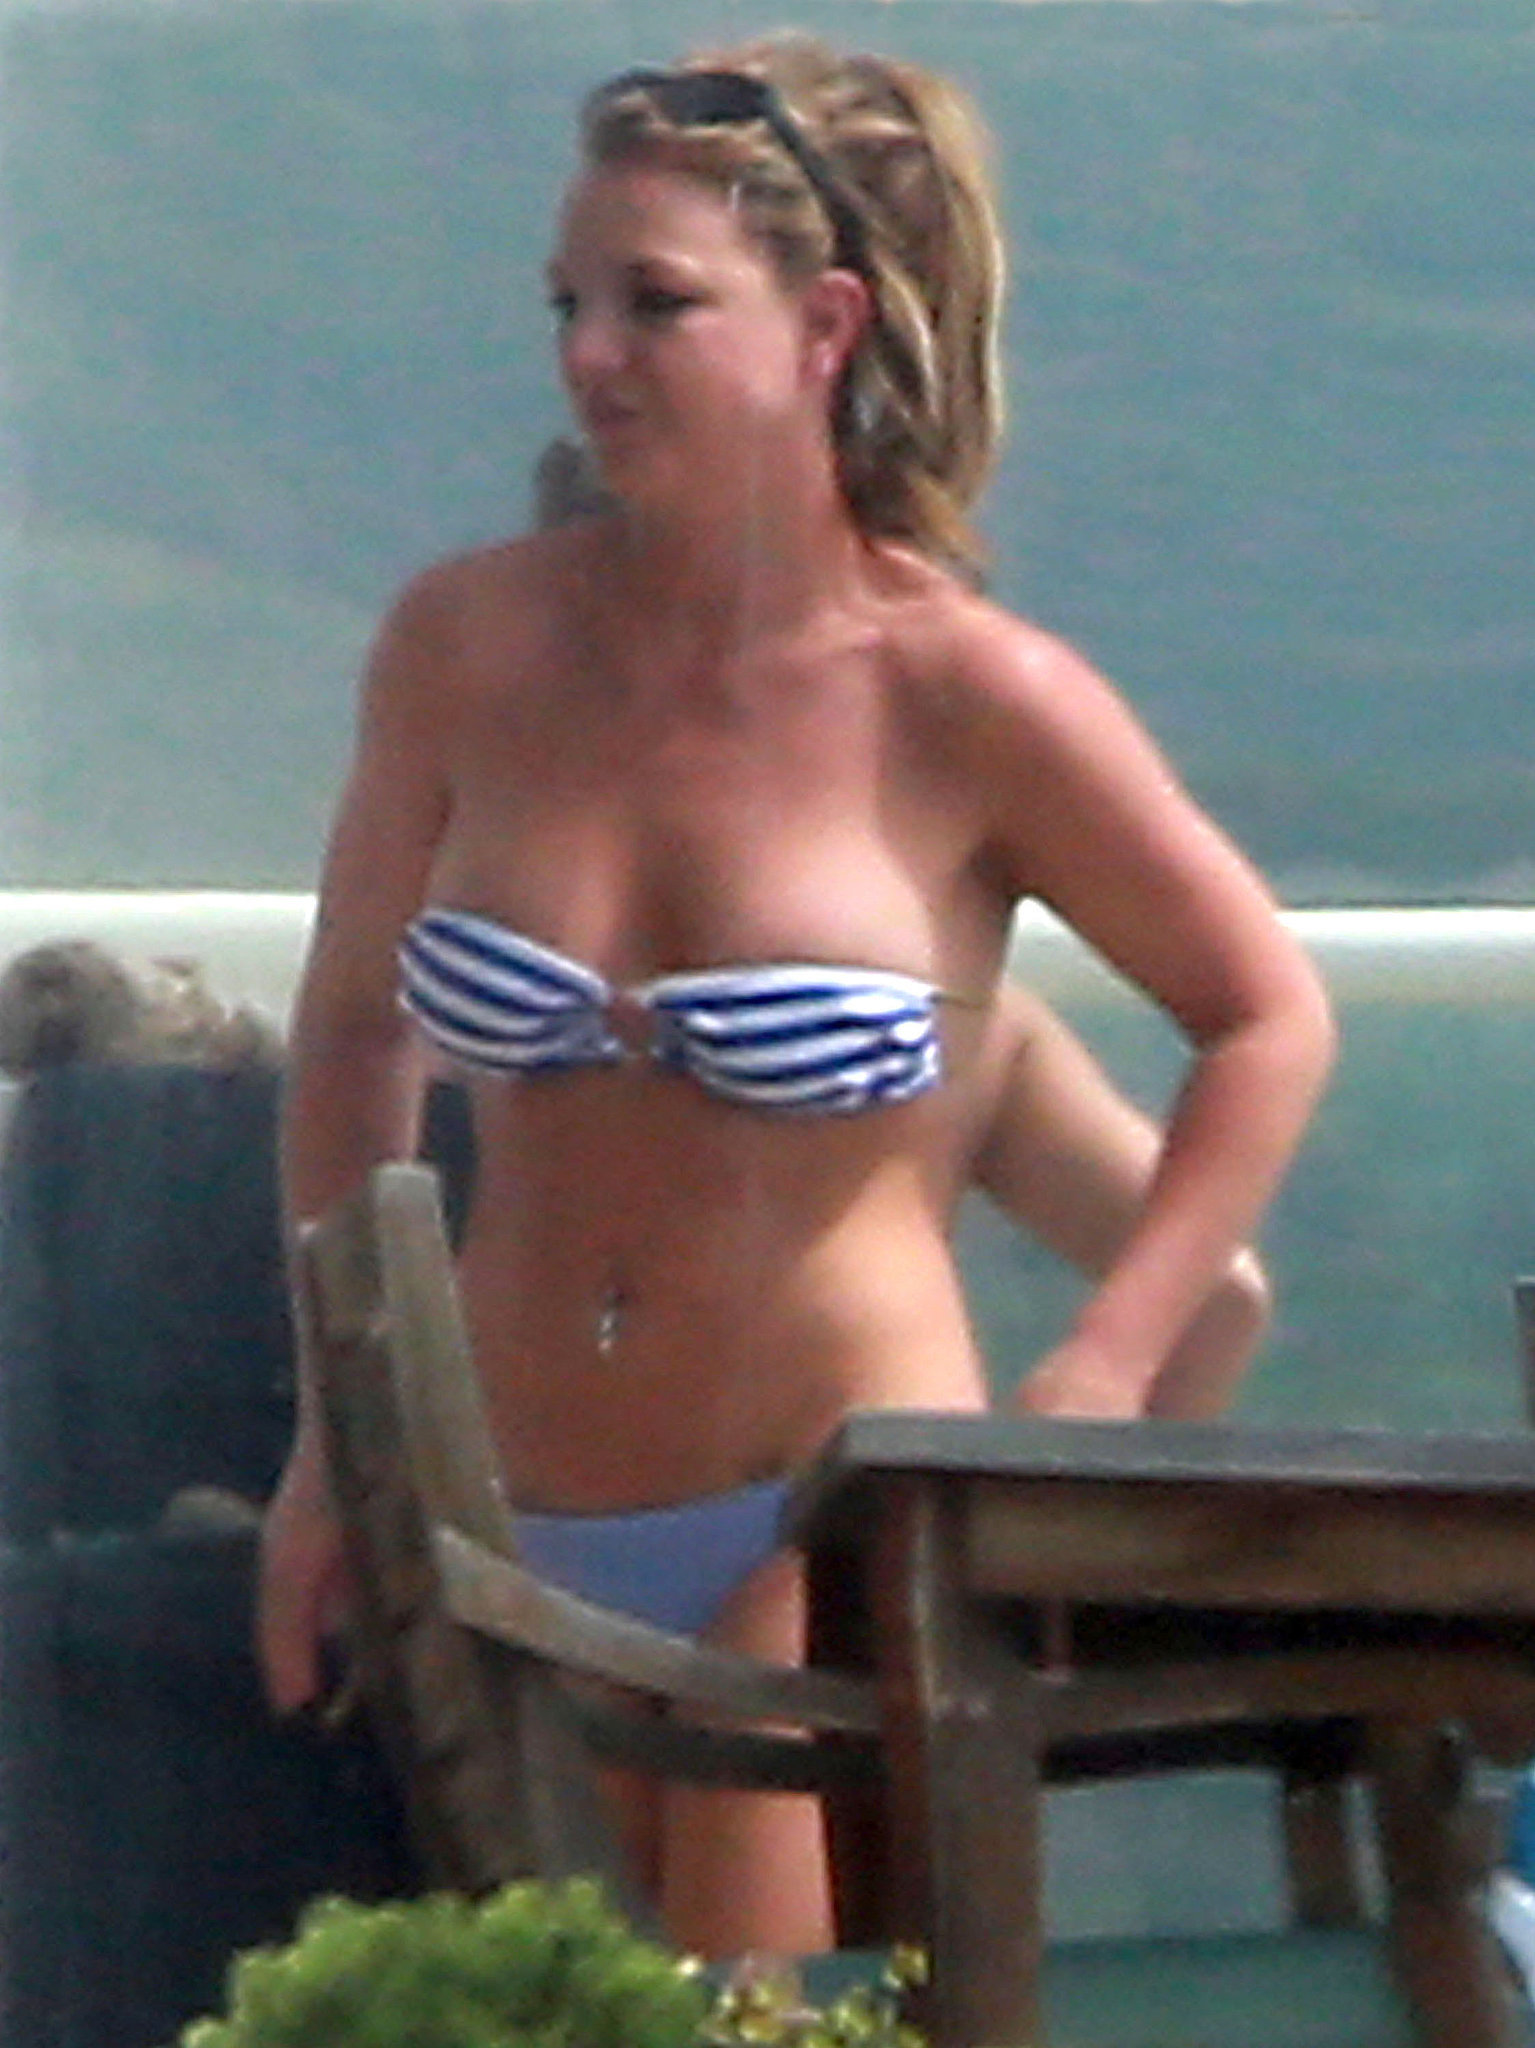 Britney Spears donned a bikini for a Malibu beach day with friends in March 2013.